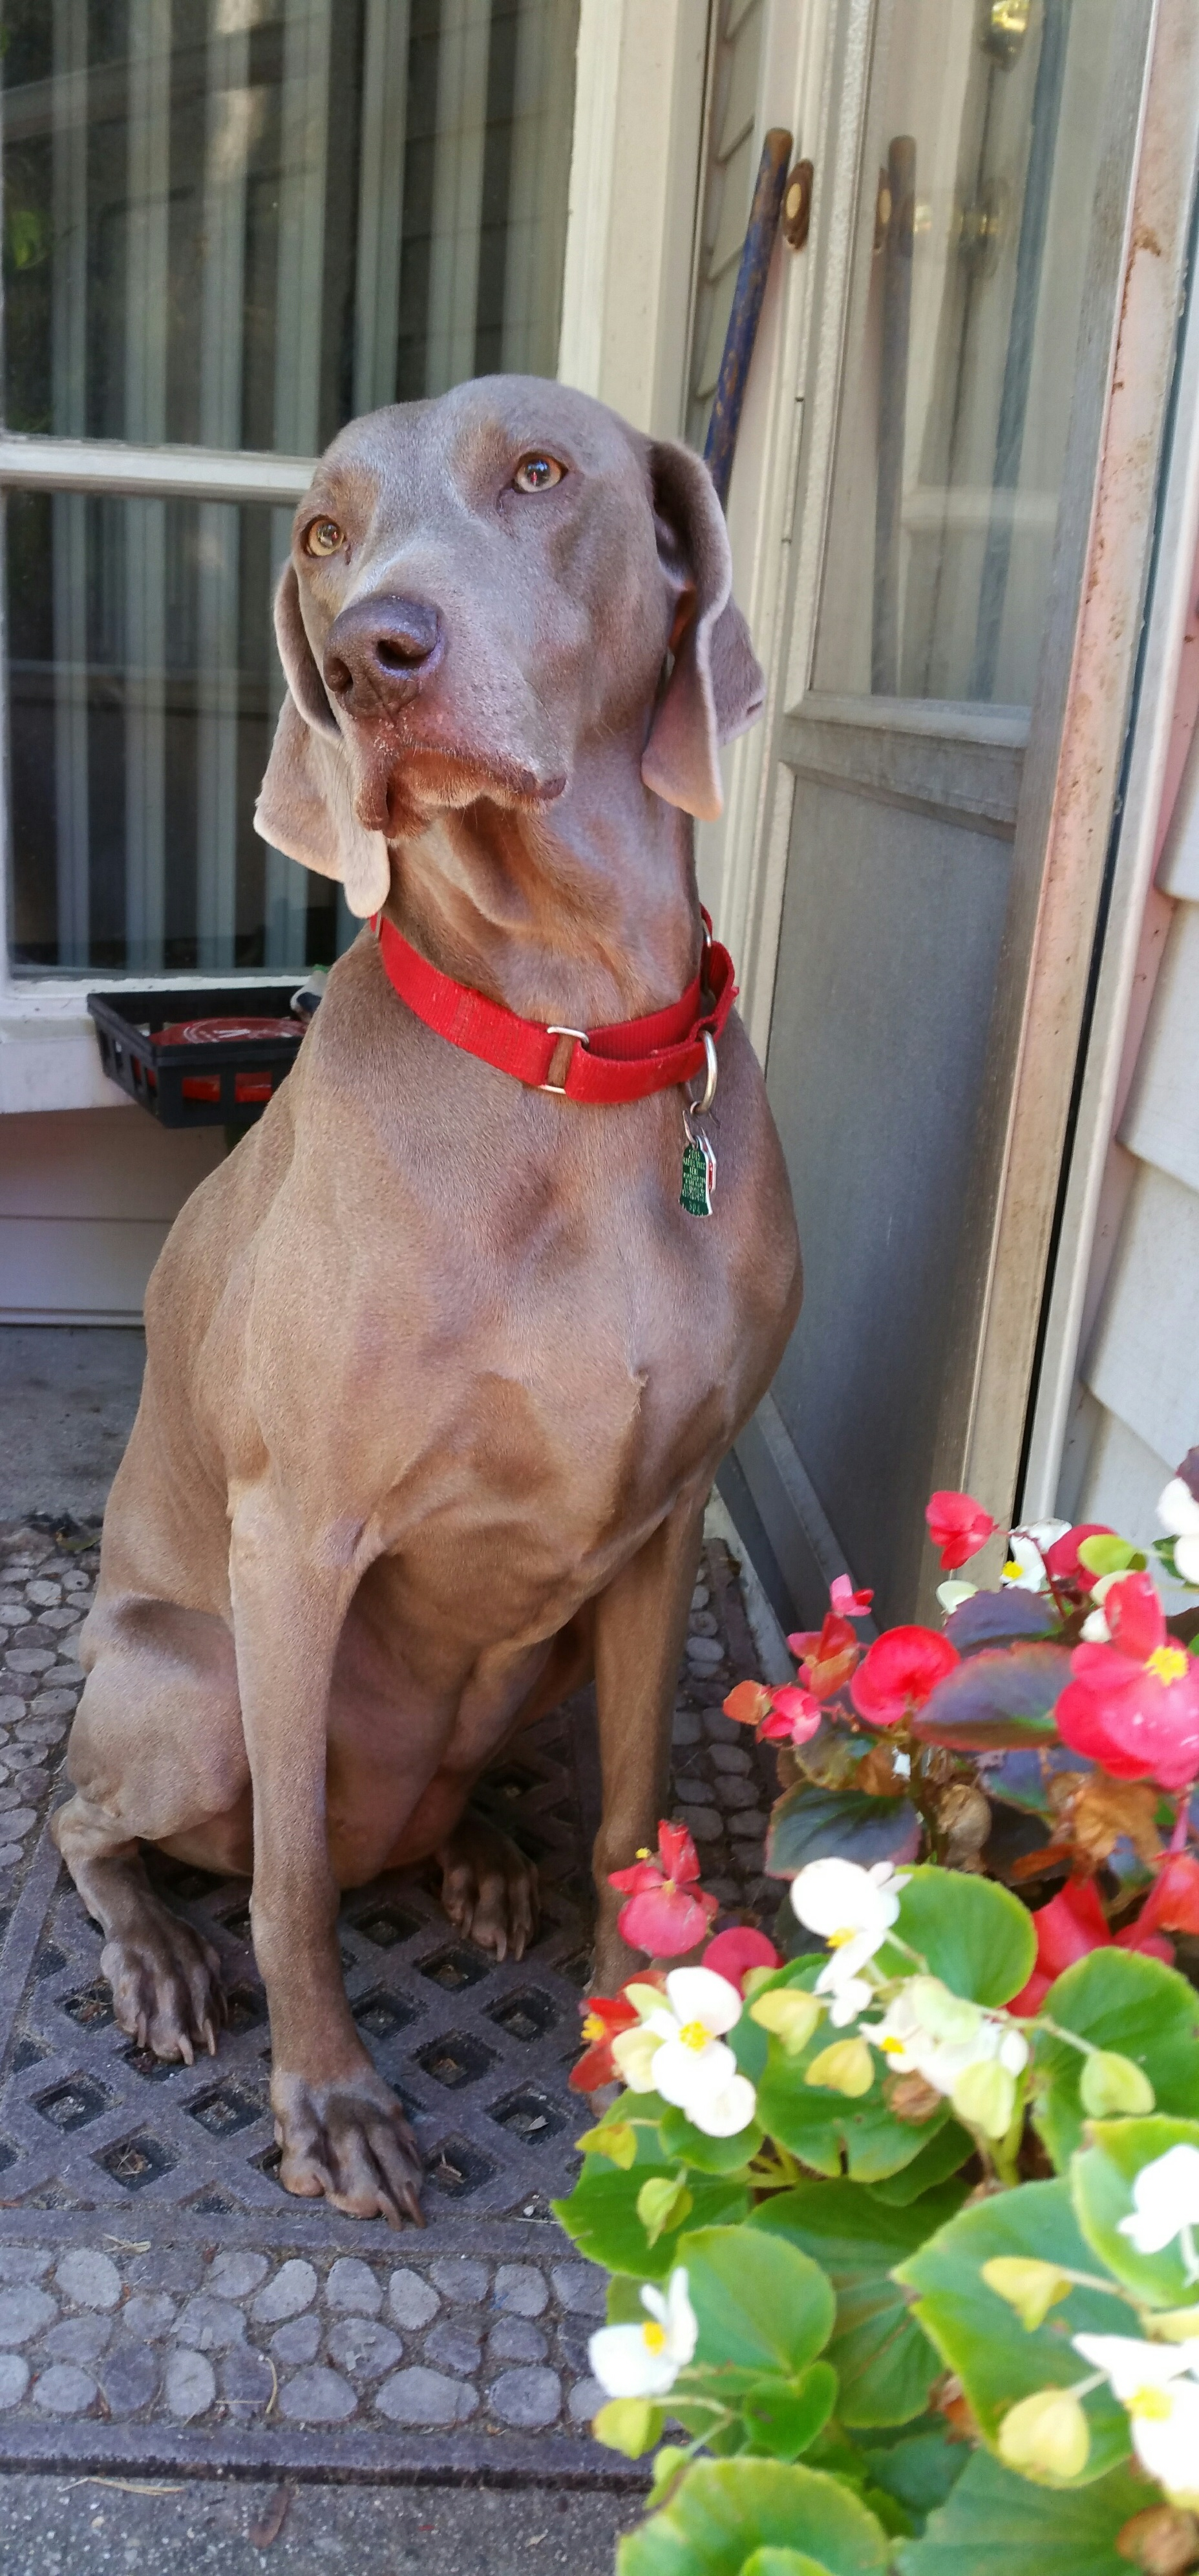 Gracie the Weimaraner